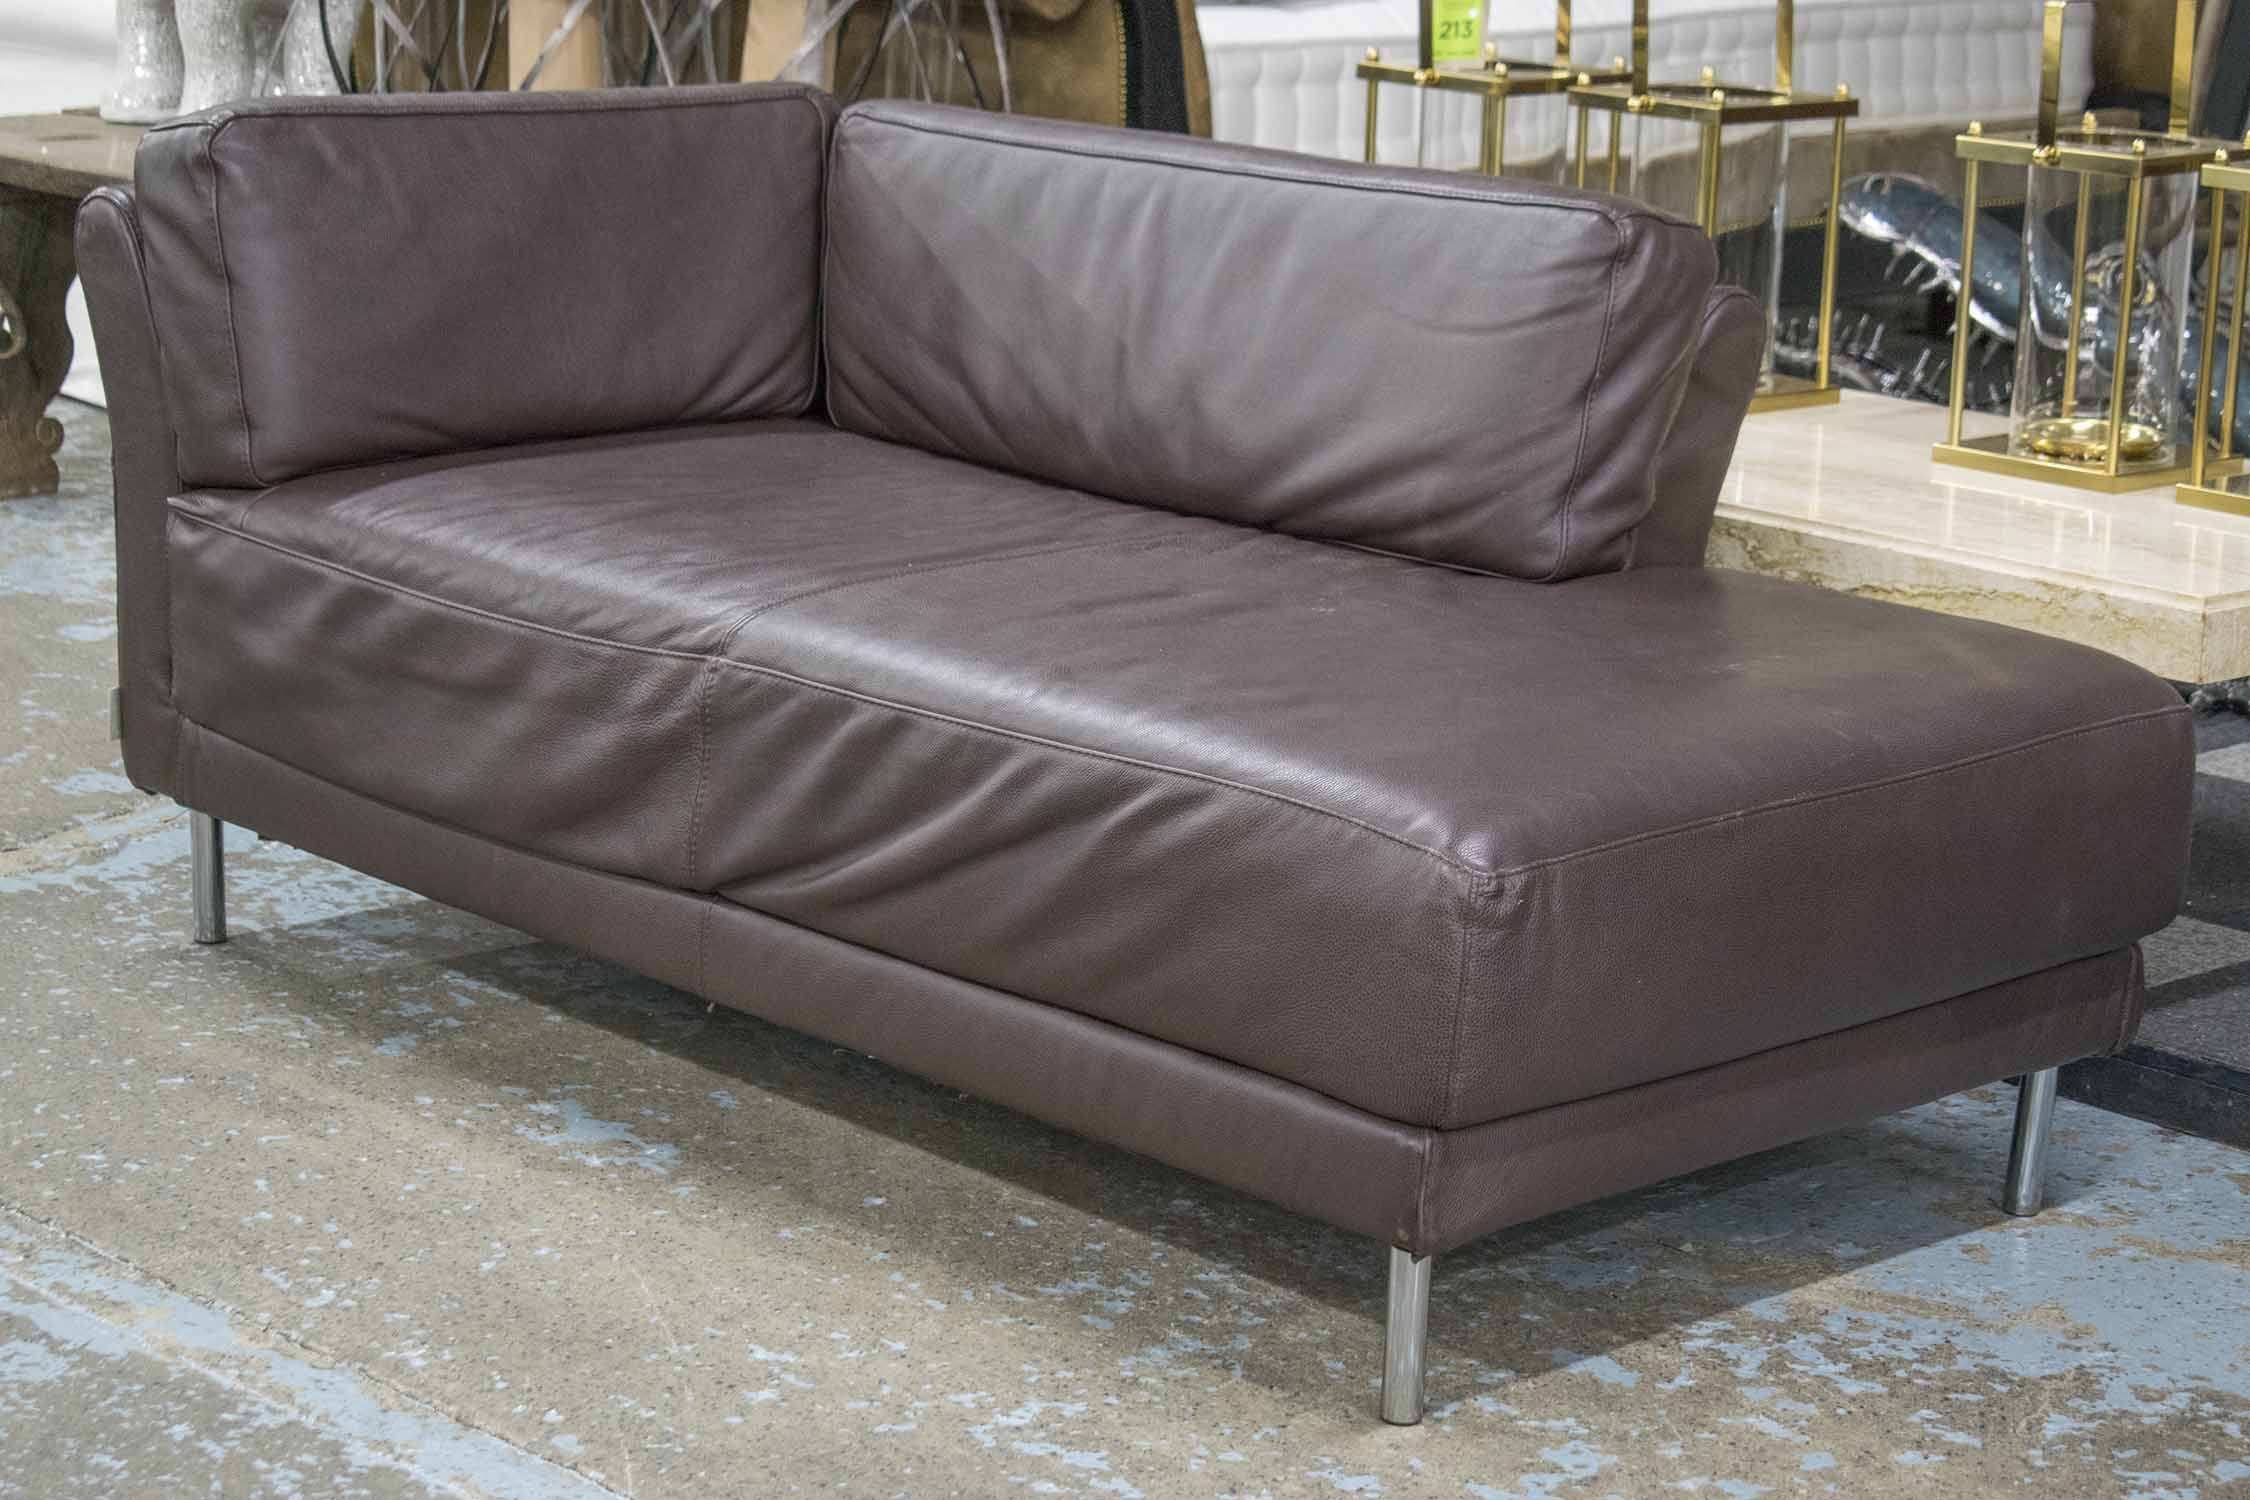 Lot 116 - HABITAT SOFA/DAYBED, grained tan hide rectangular with shaped corner cushions, 167cm W.